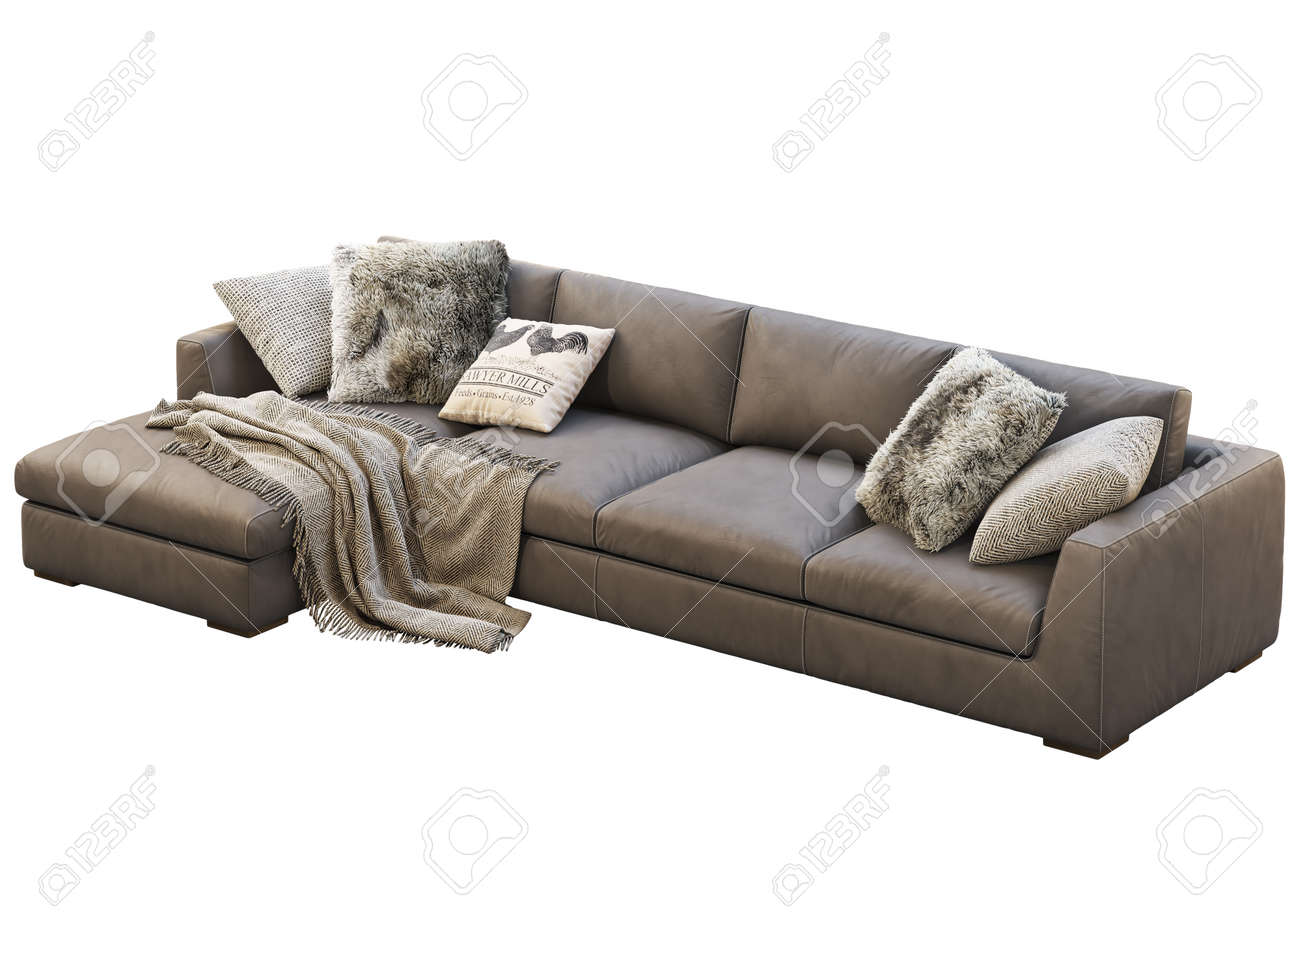 - Chalet Modular Leather Sofa With Chaise Lounge. Leather Upholstery